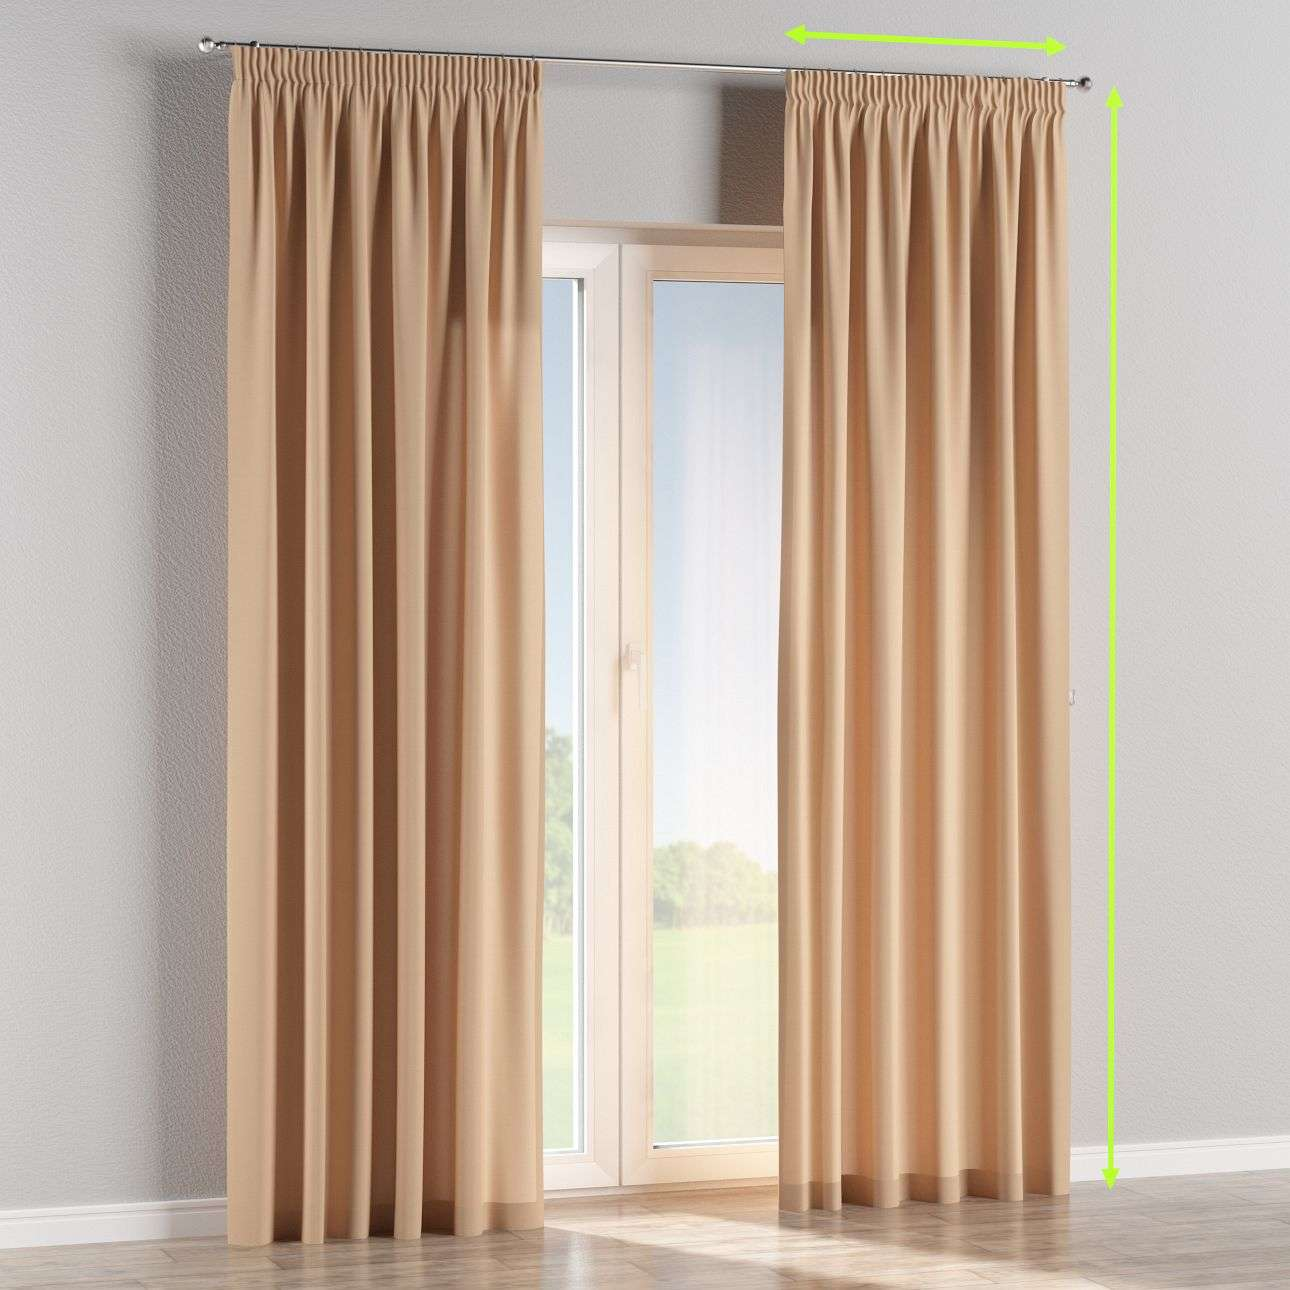 Pencil pleat lined curtains in collection Cotton Panama, fabric: 702-01